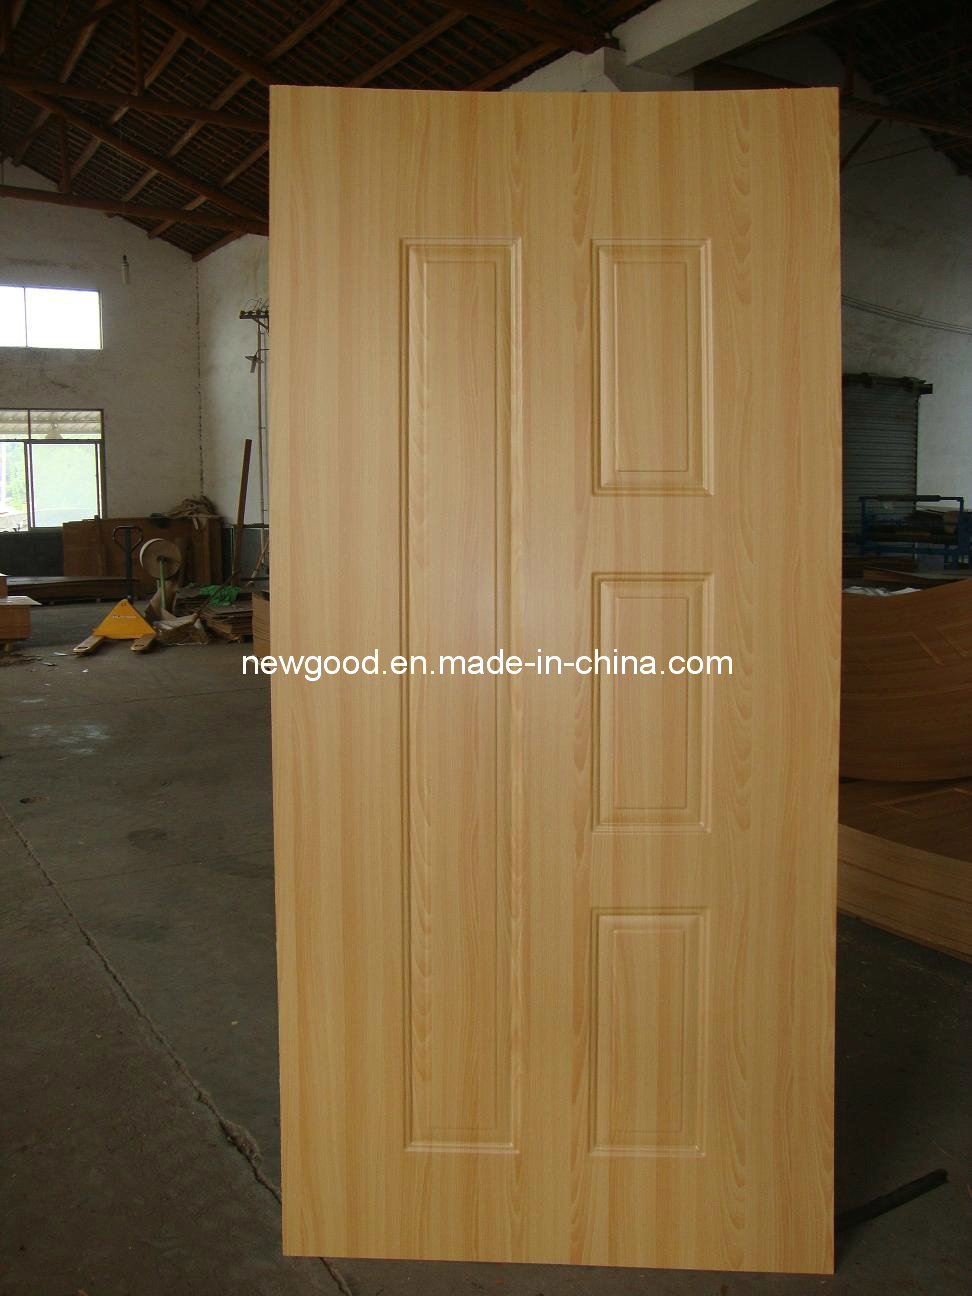 4.2mm Melamine HDF MDF Moulded Door Skin (Glossy, Matt)